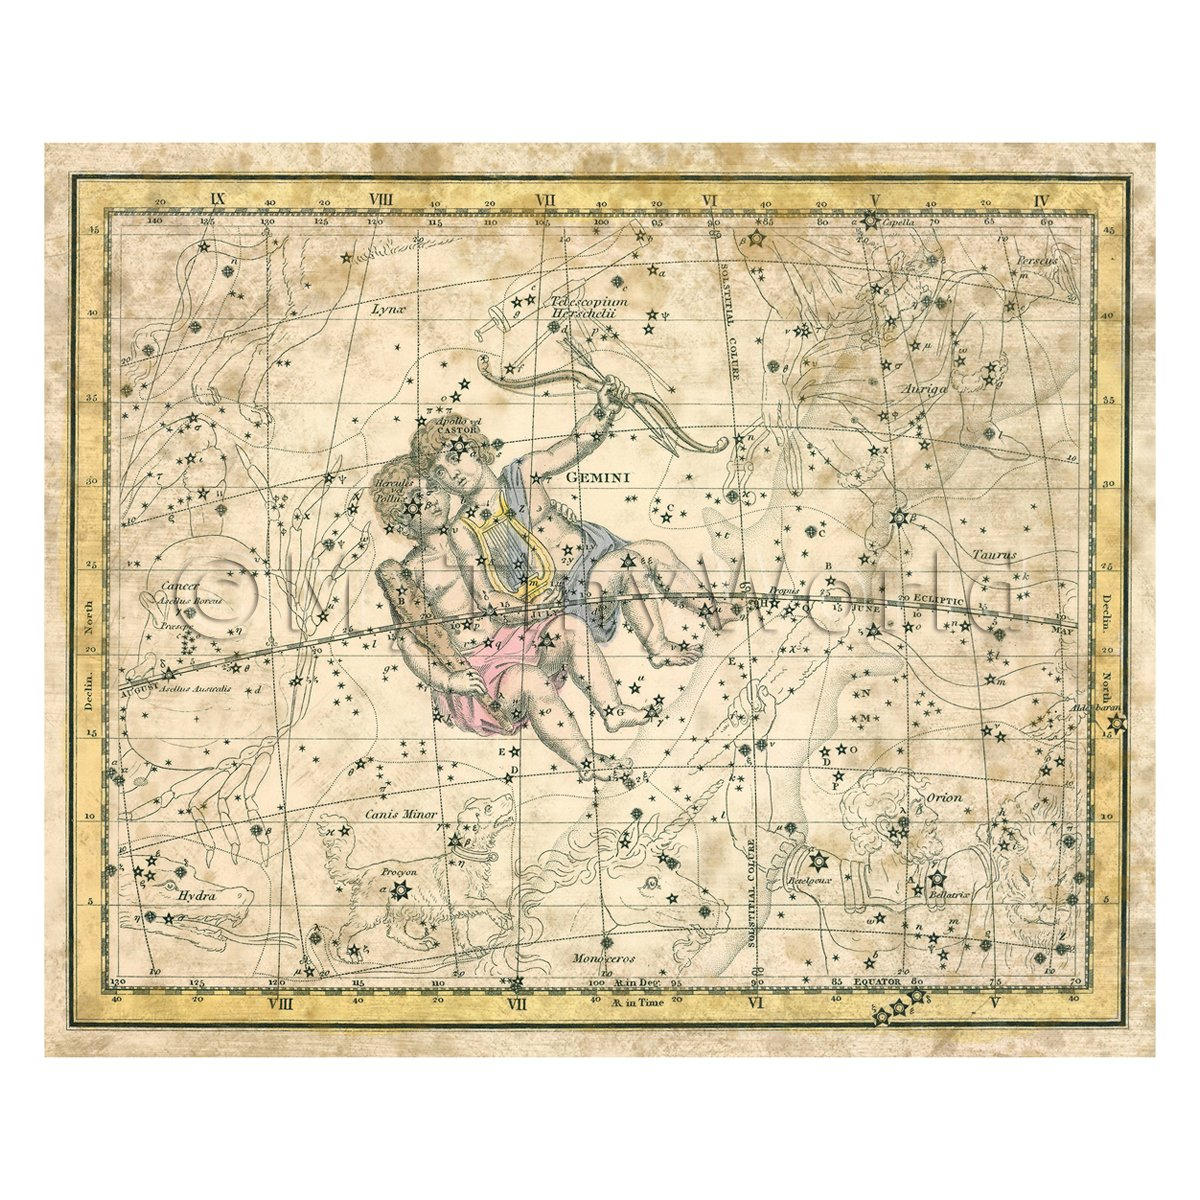 Dolls House Miniature Aged 1800s Star Map With Gemini